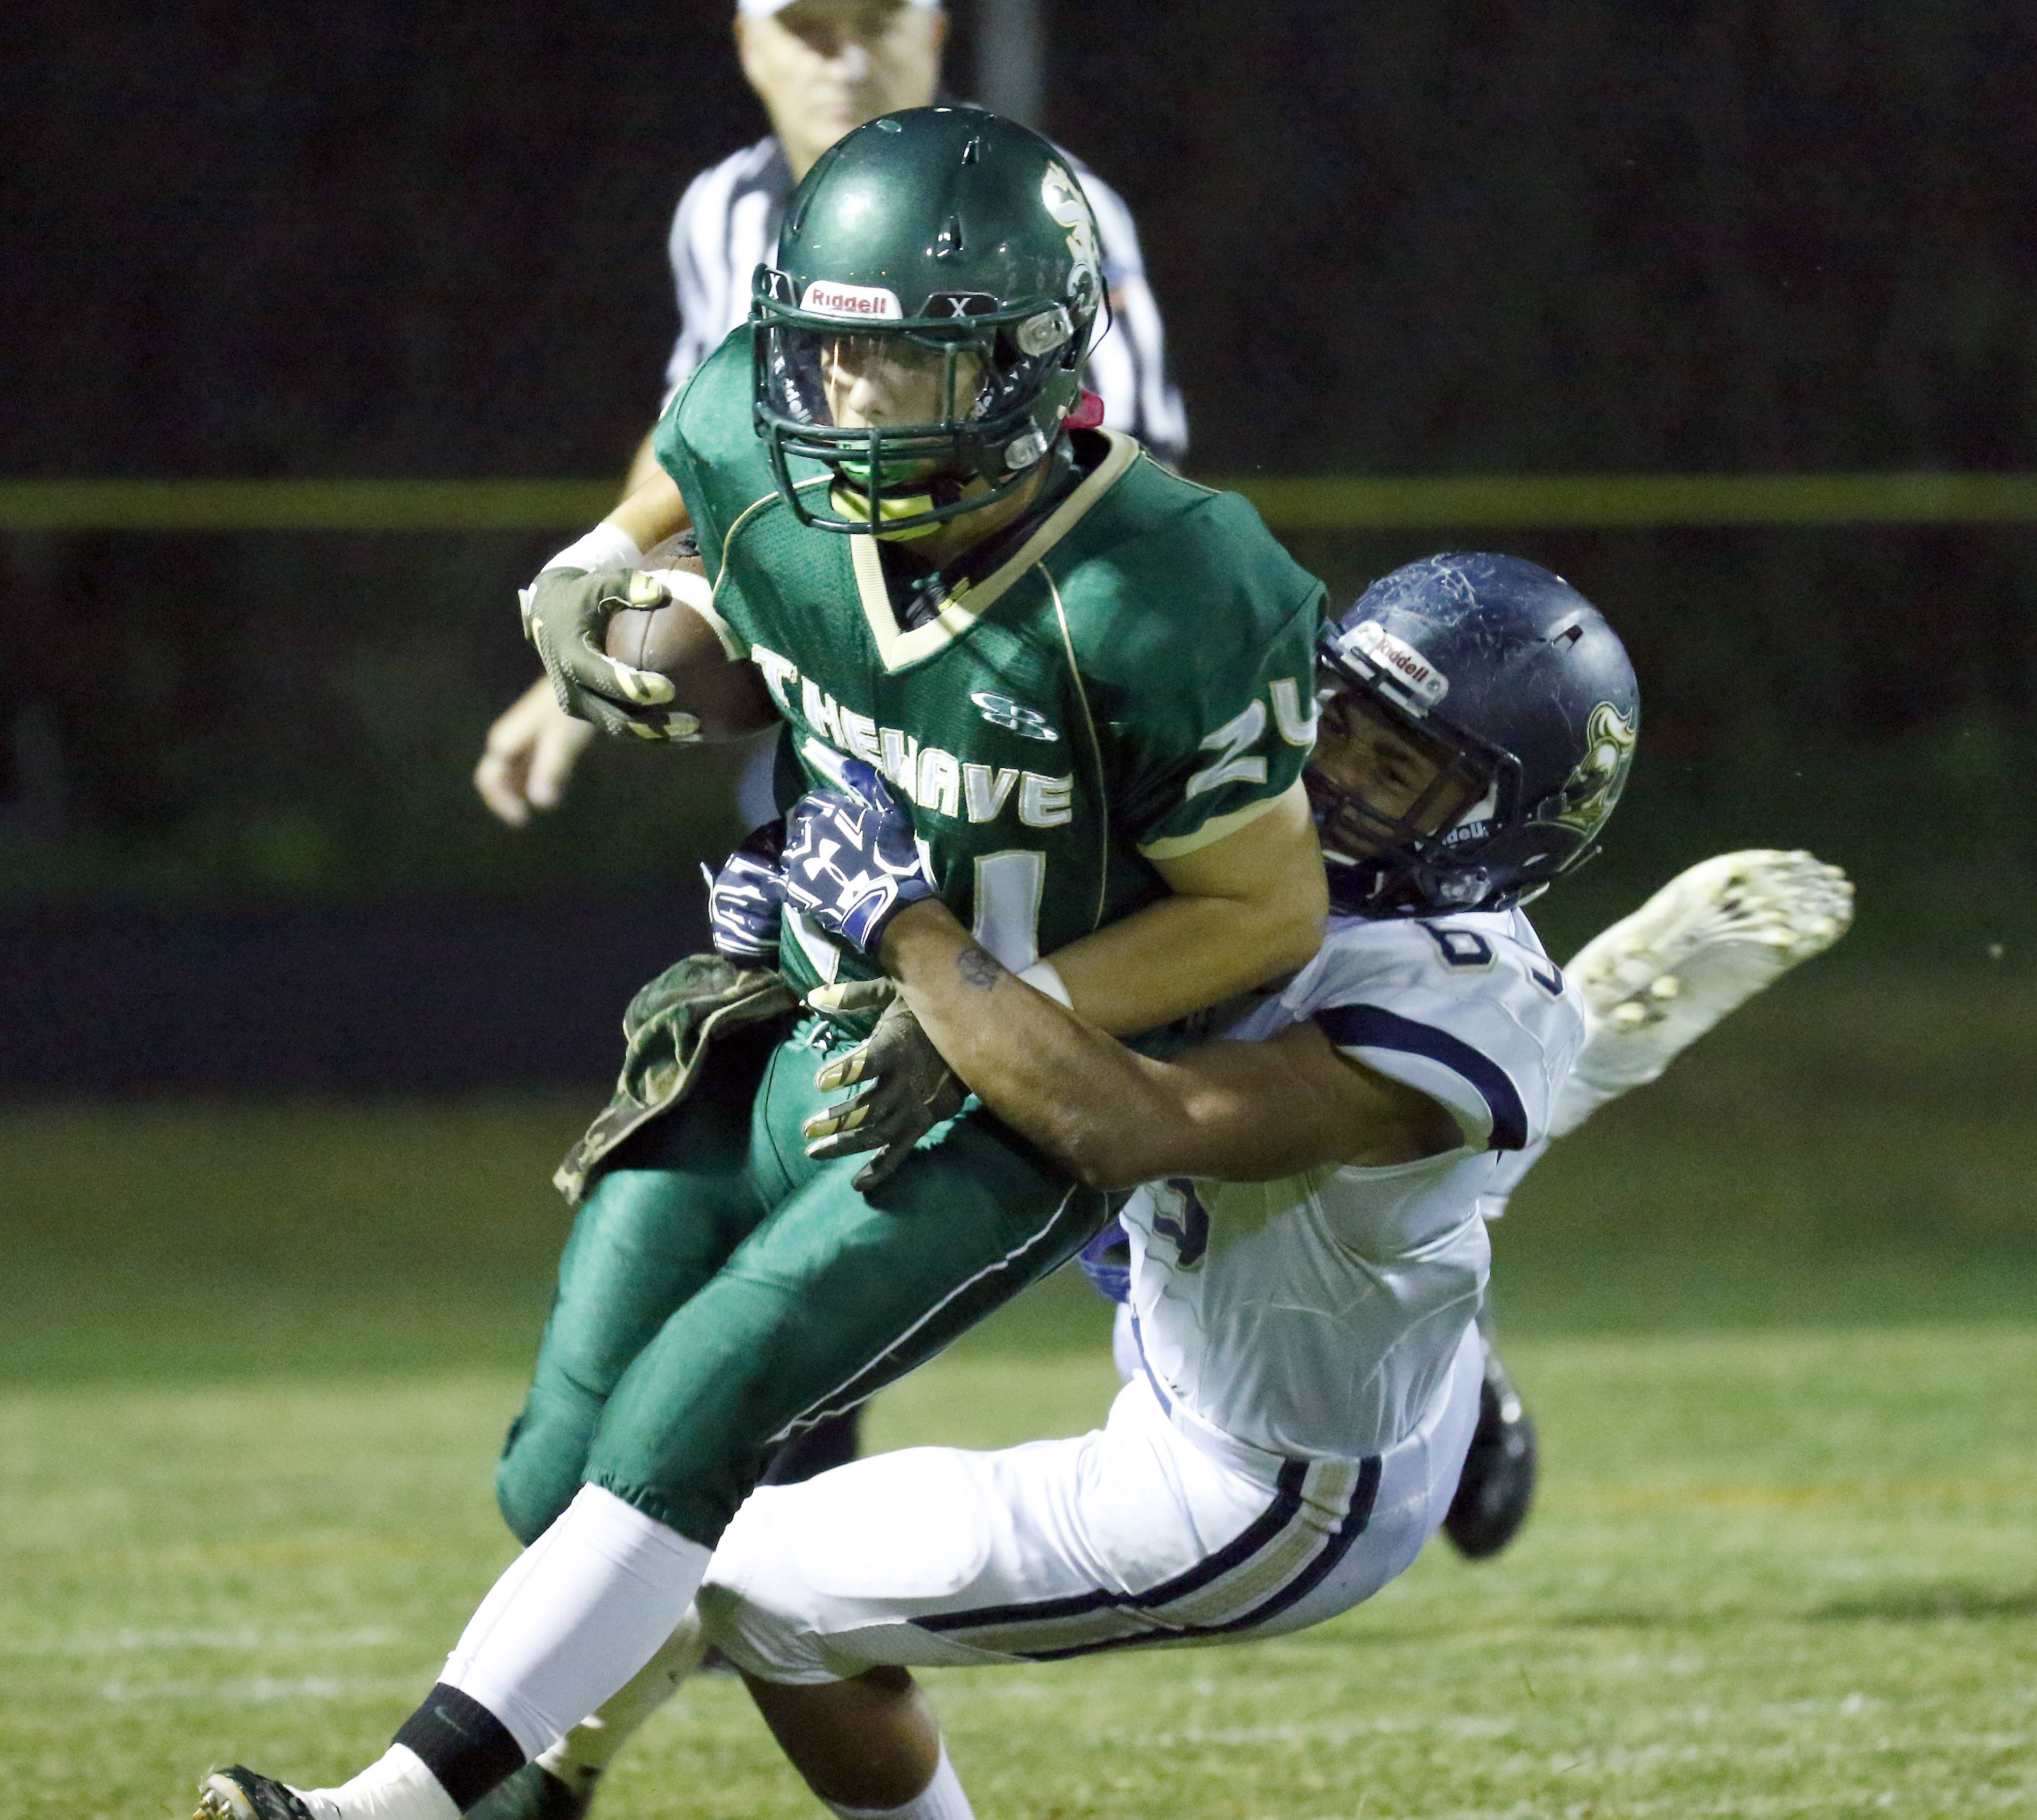 St. Edward's Angel Garcia tries to break free from IC Catholic's Kemon Reese Friday night at Greg True Field in Elgin.